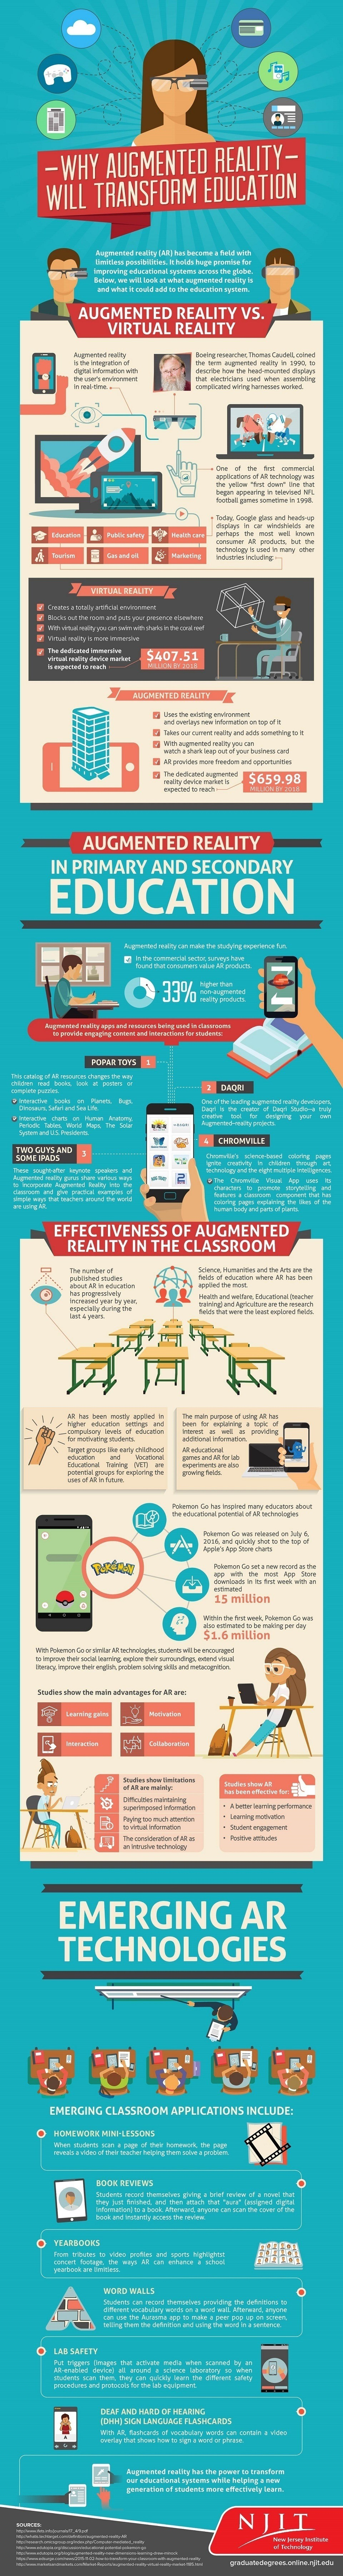 Why Augmented Reality Will Transform Education Infographic